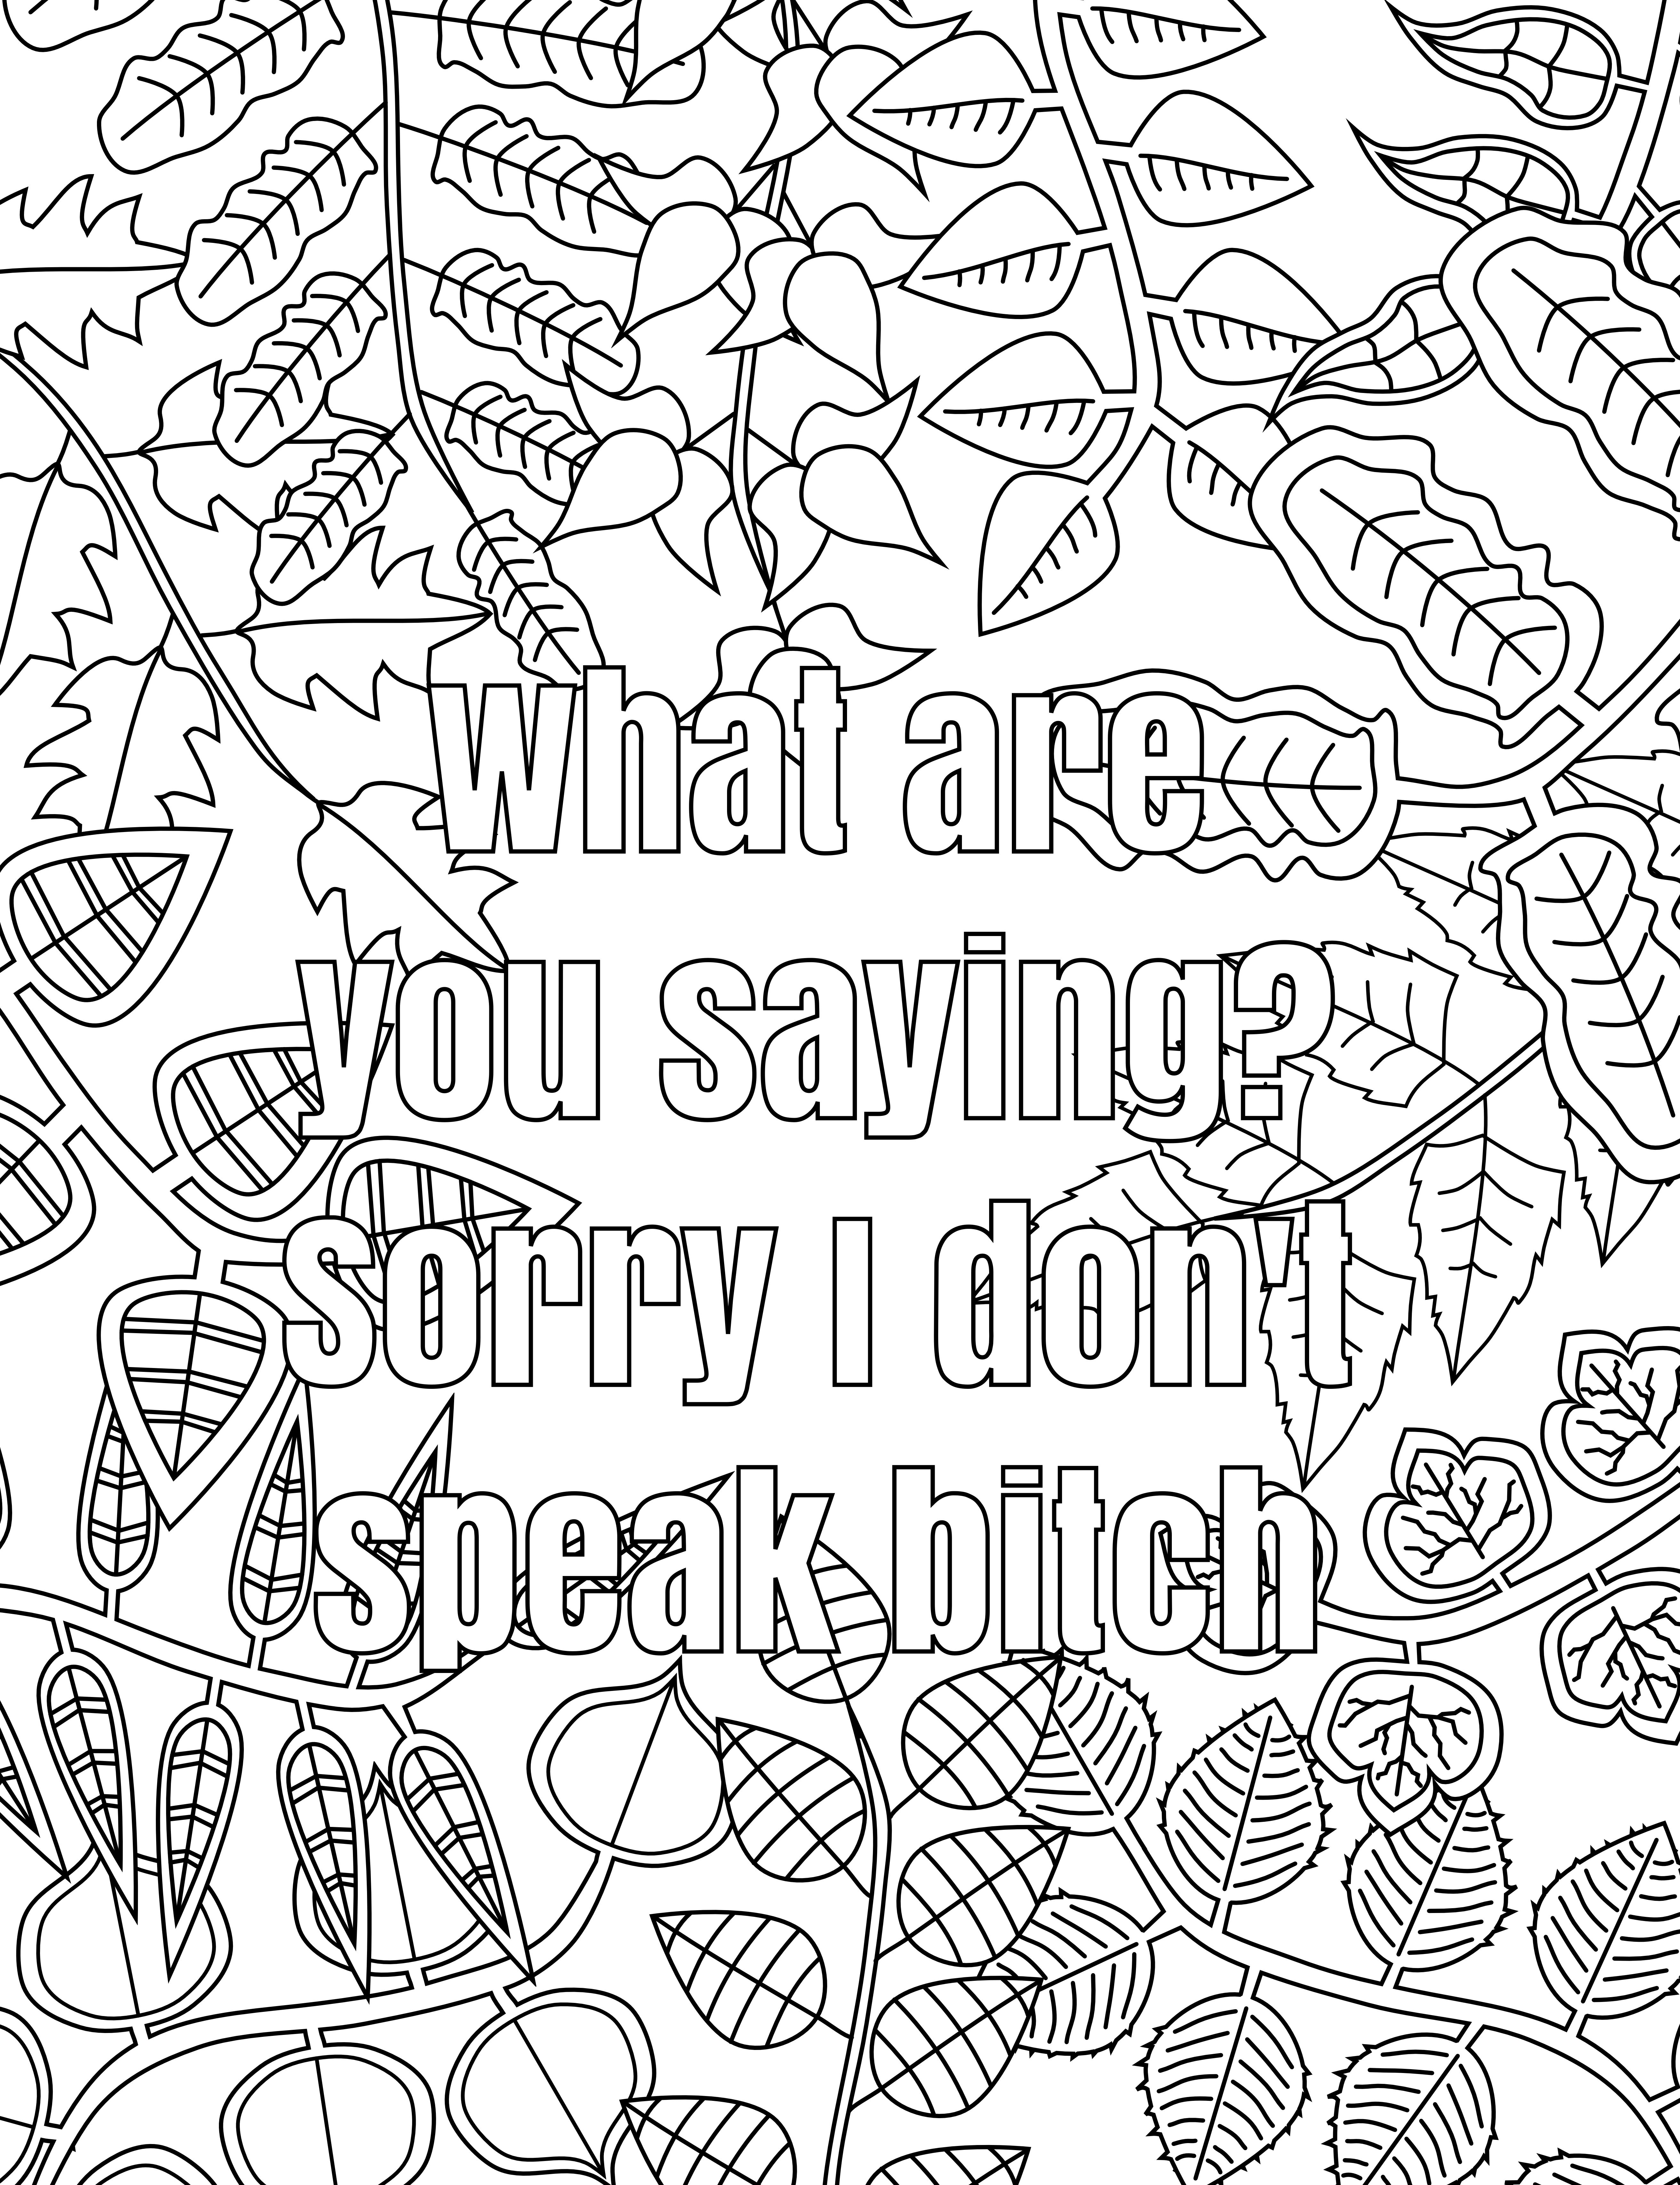 Free Printable Coloring Pages For Adults Only Swear Words Download - Free Printable Coloring Pages For Adults Only